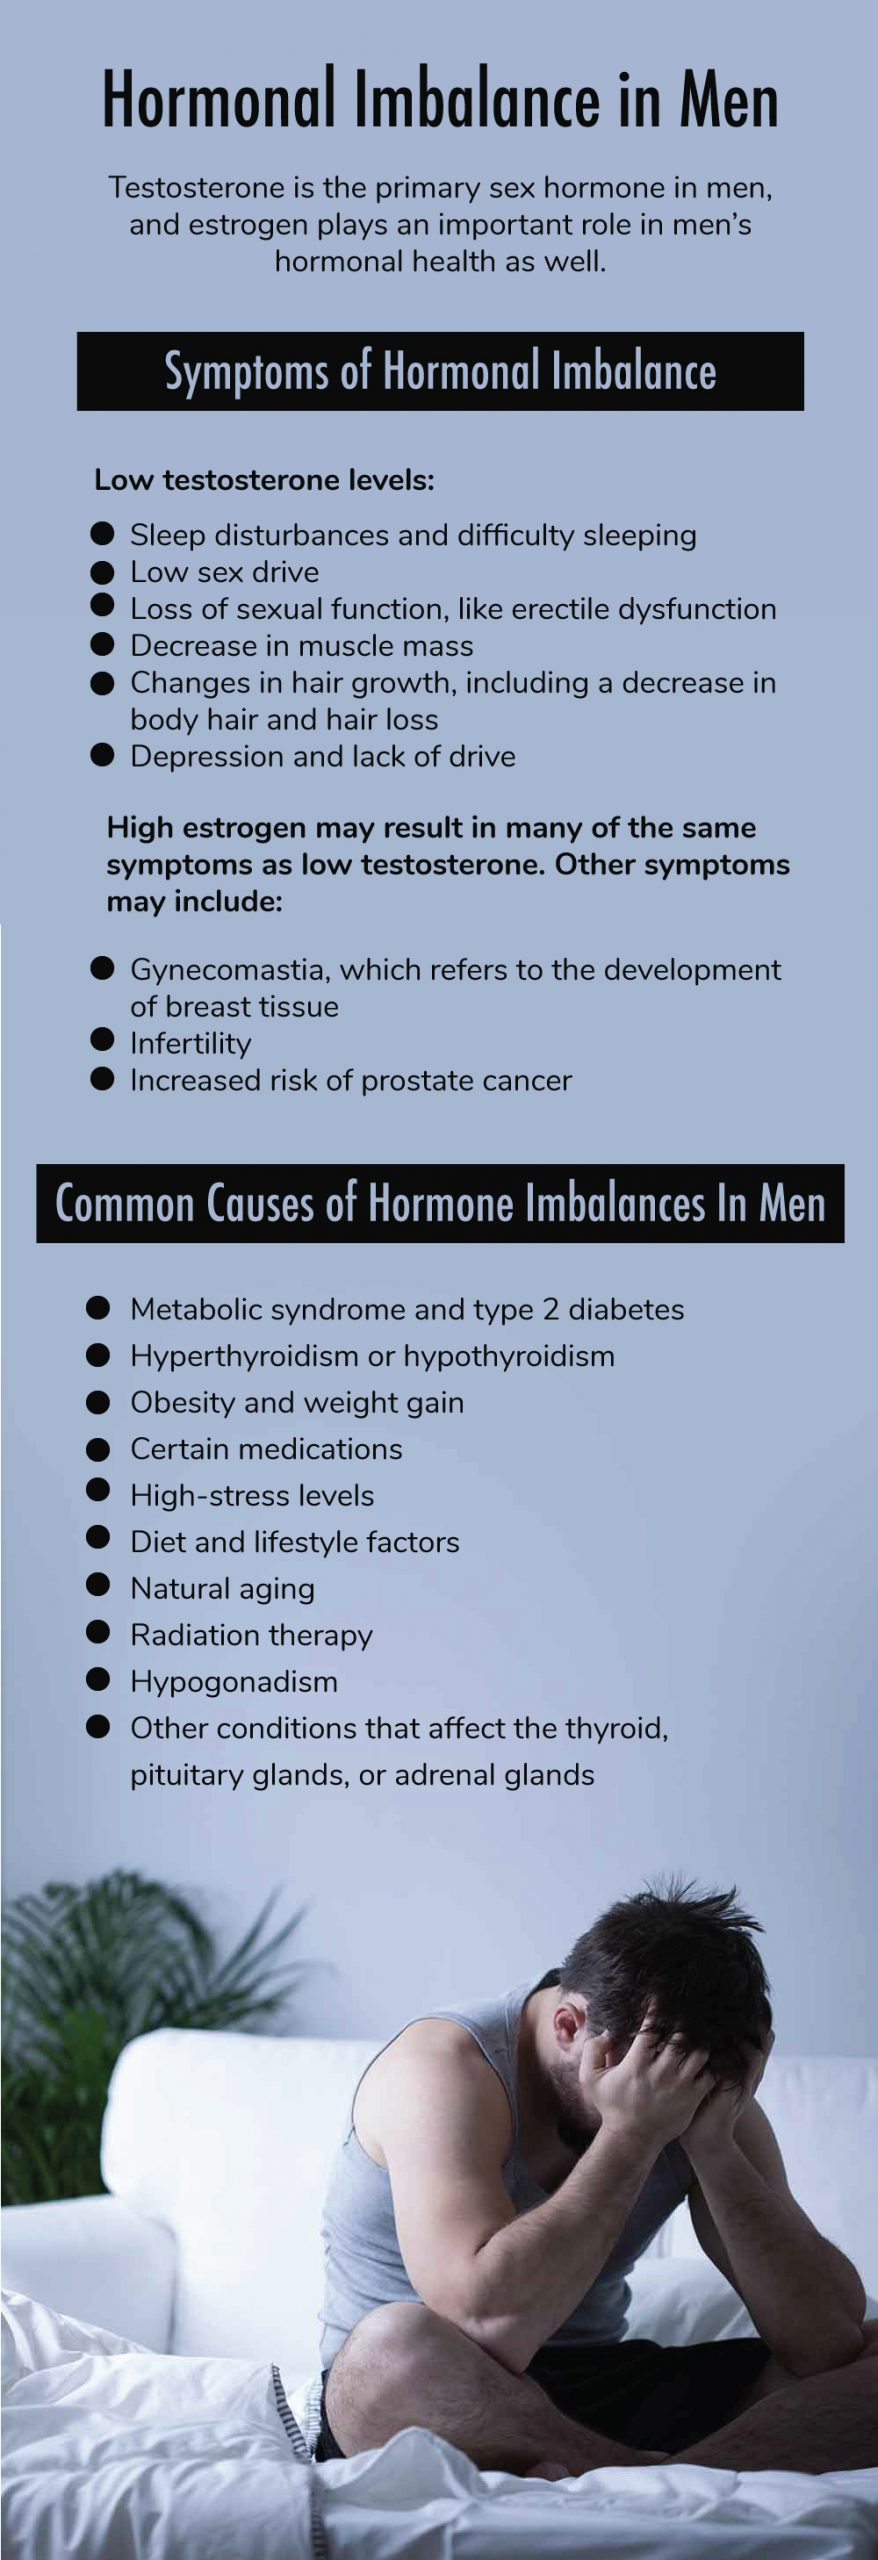 Hormonal Imbalance in Men